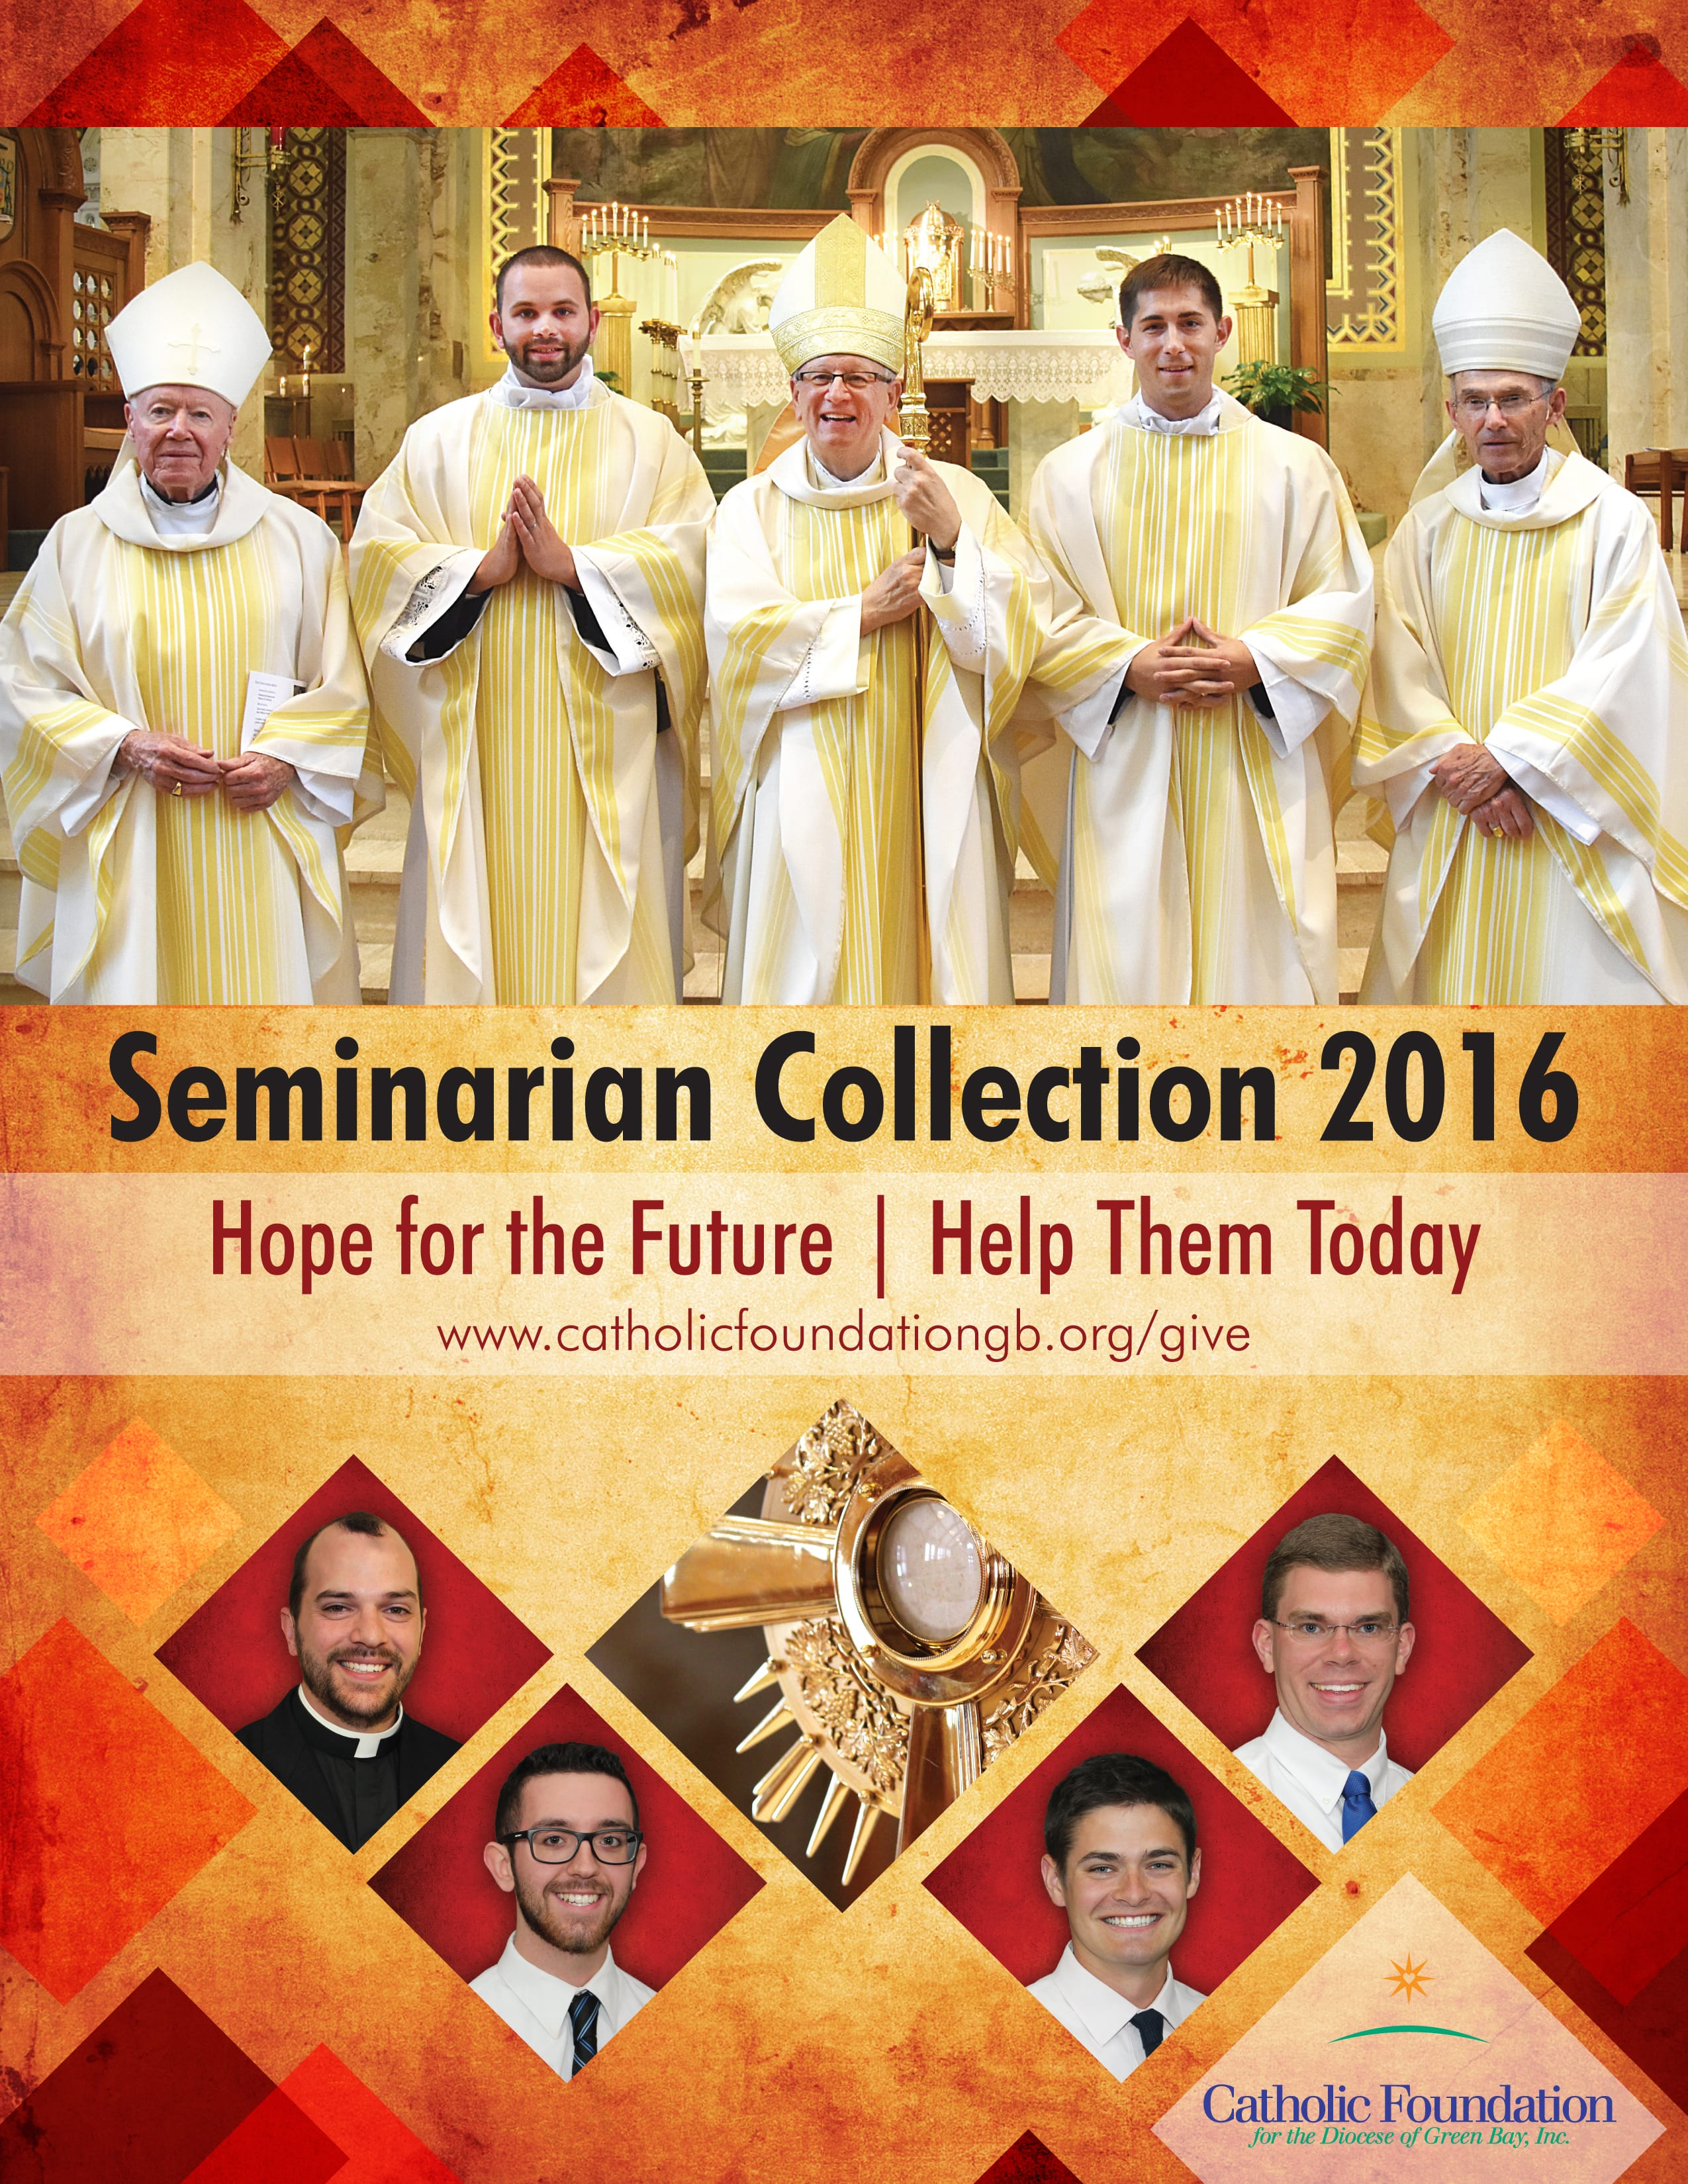 2016 Seminarian Collection Poster